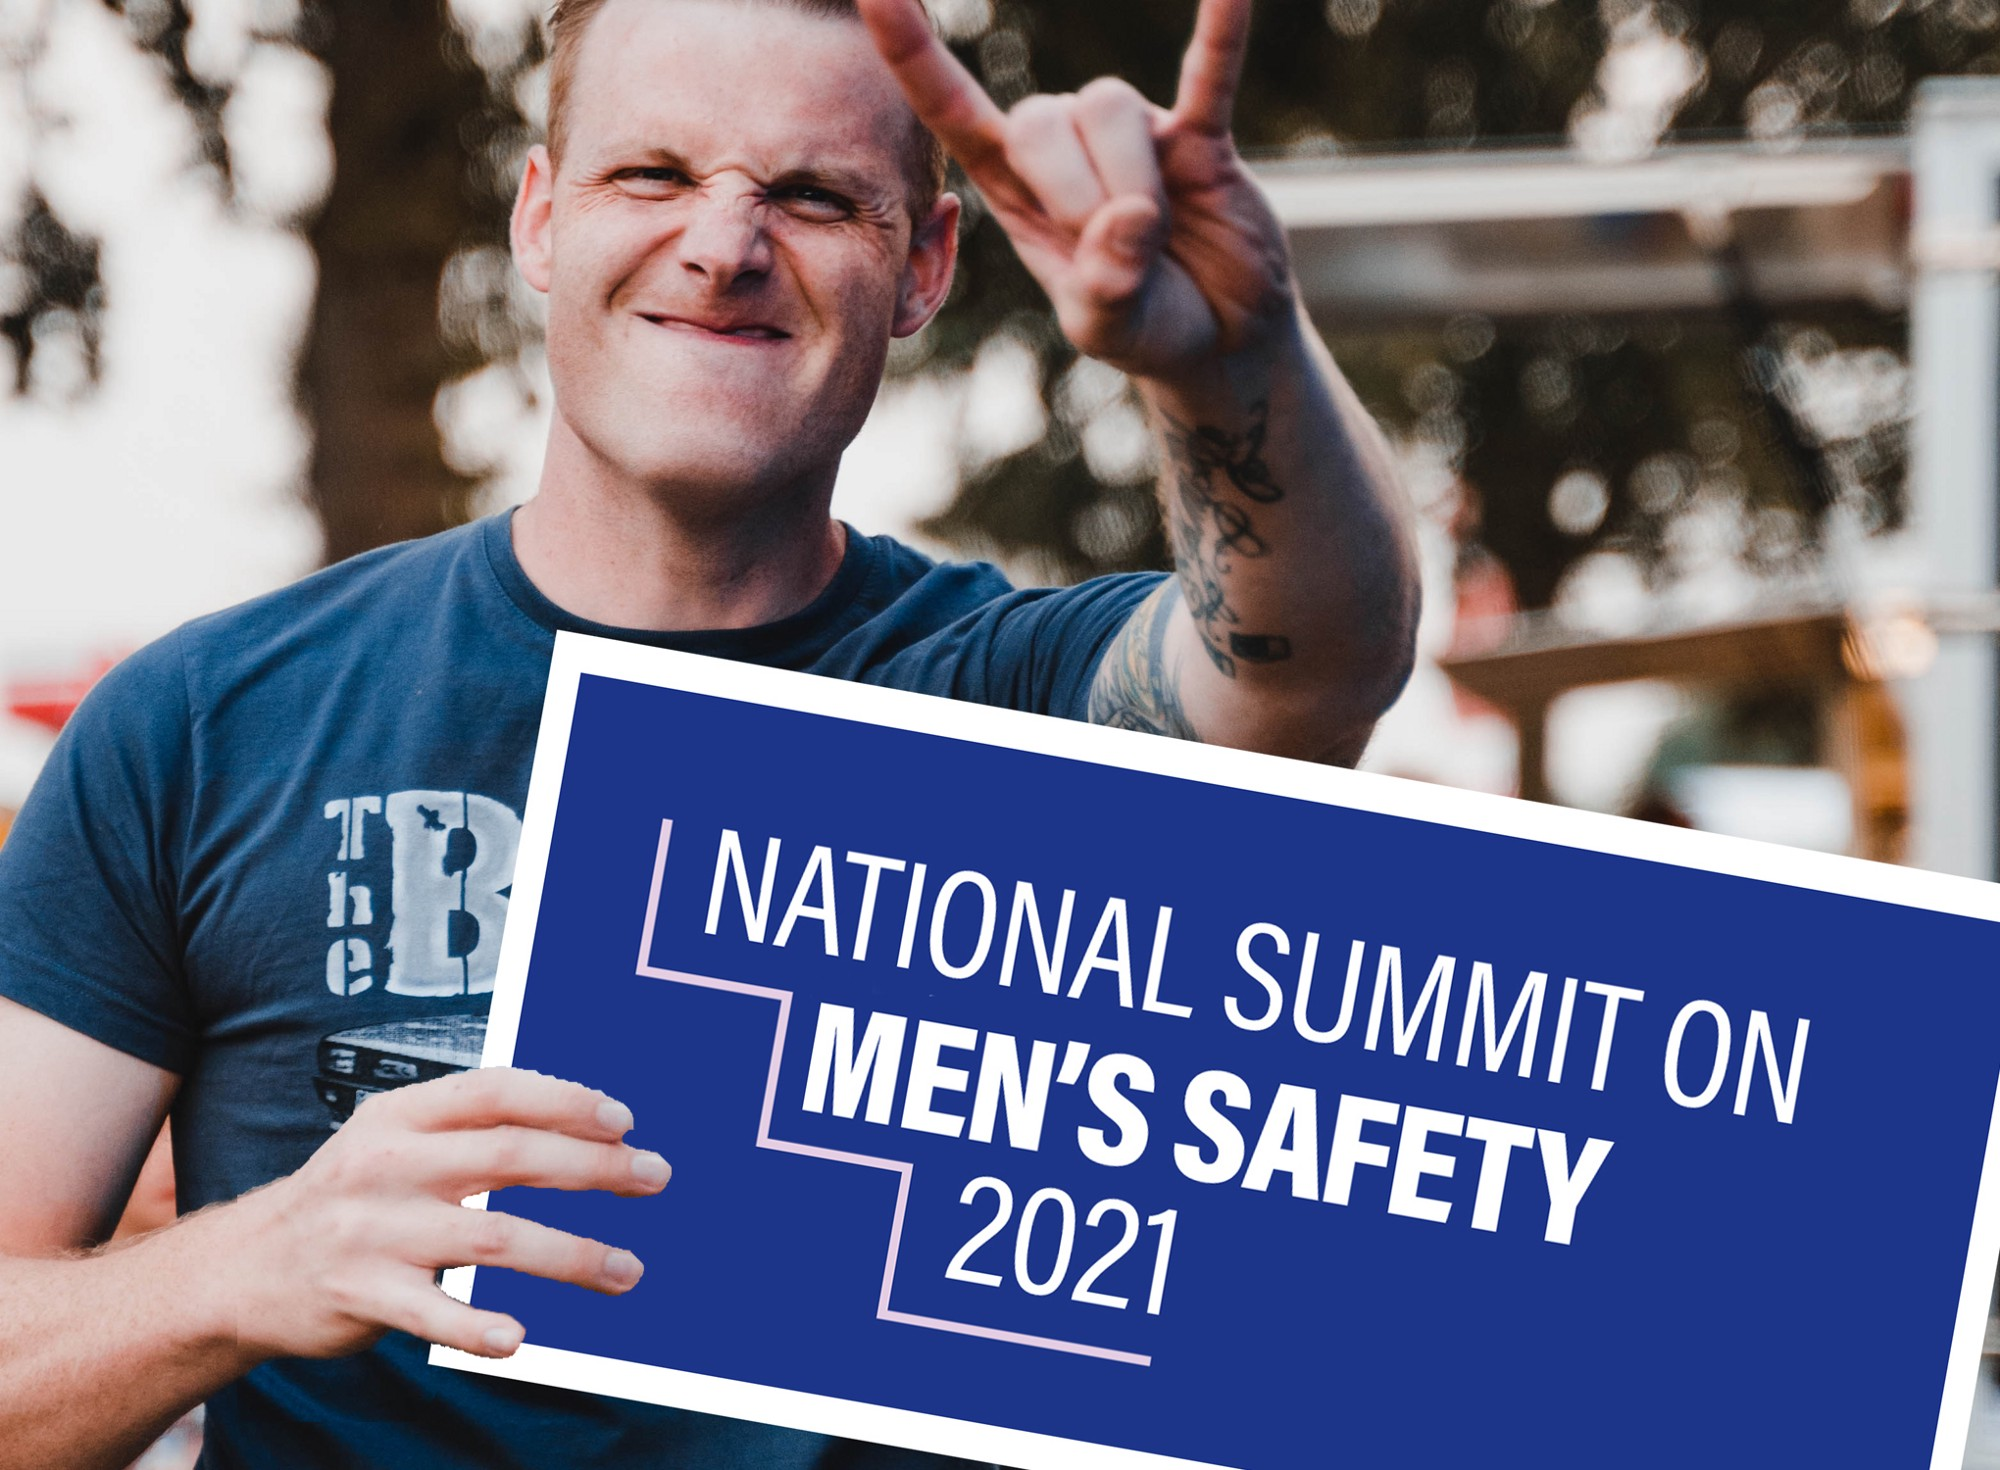 A young white man holds a sign for a Men's Safety Summit while holding his hand up in the rock on gesture.